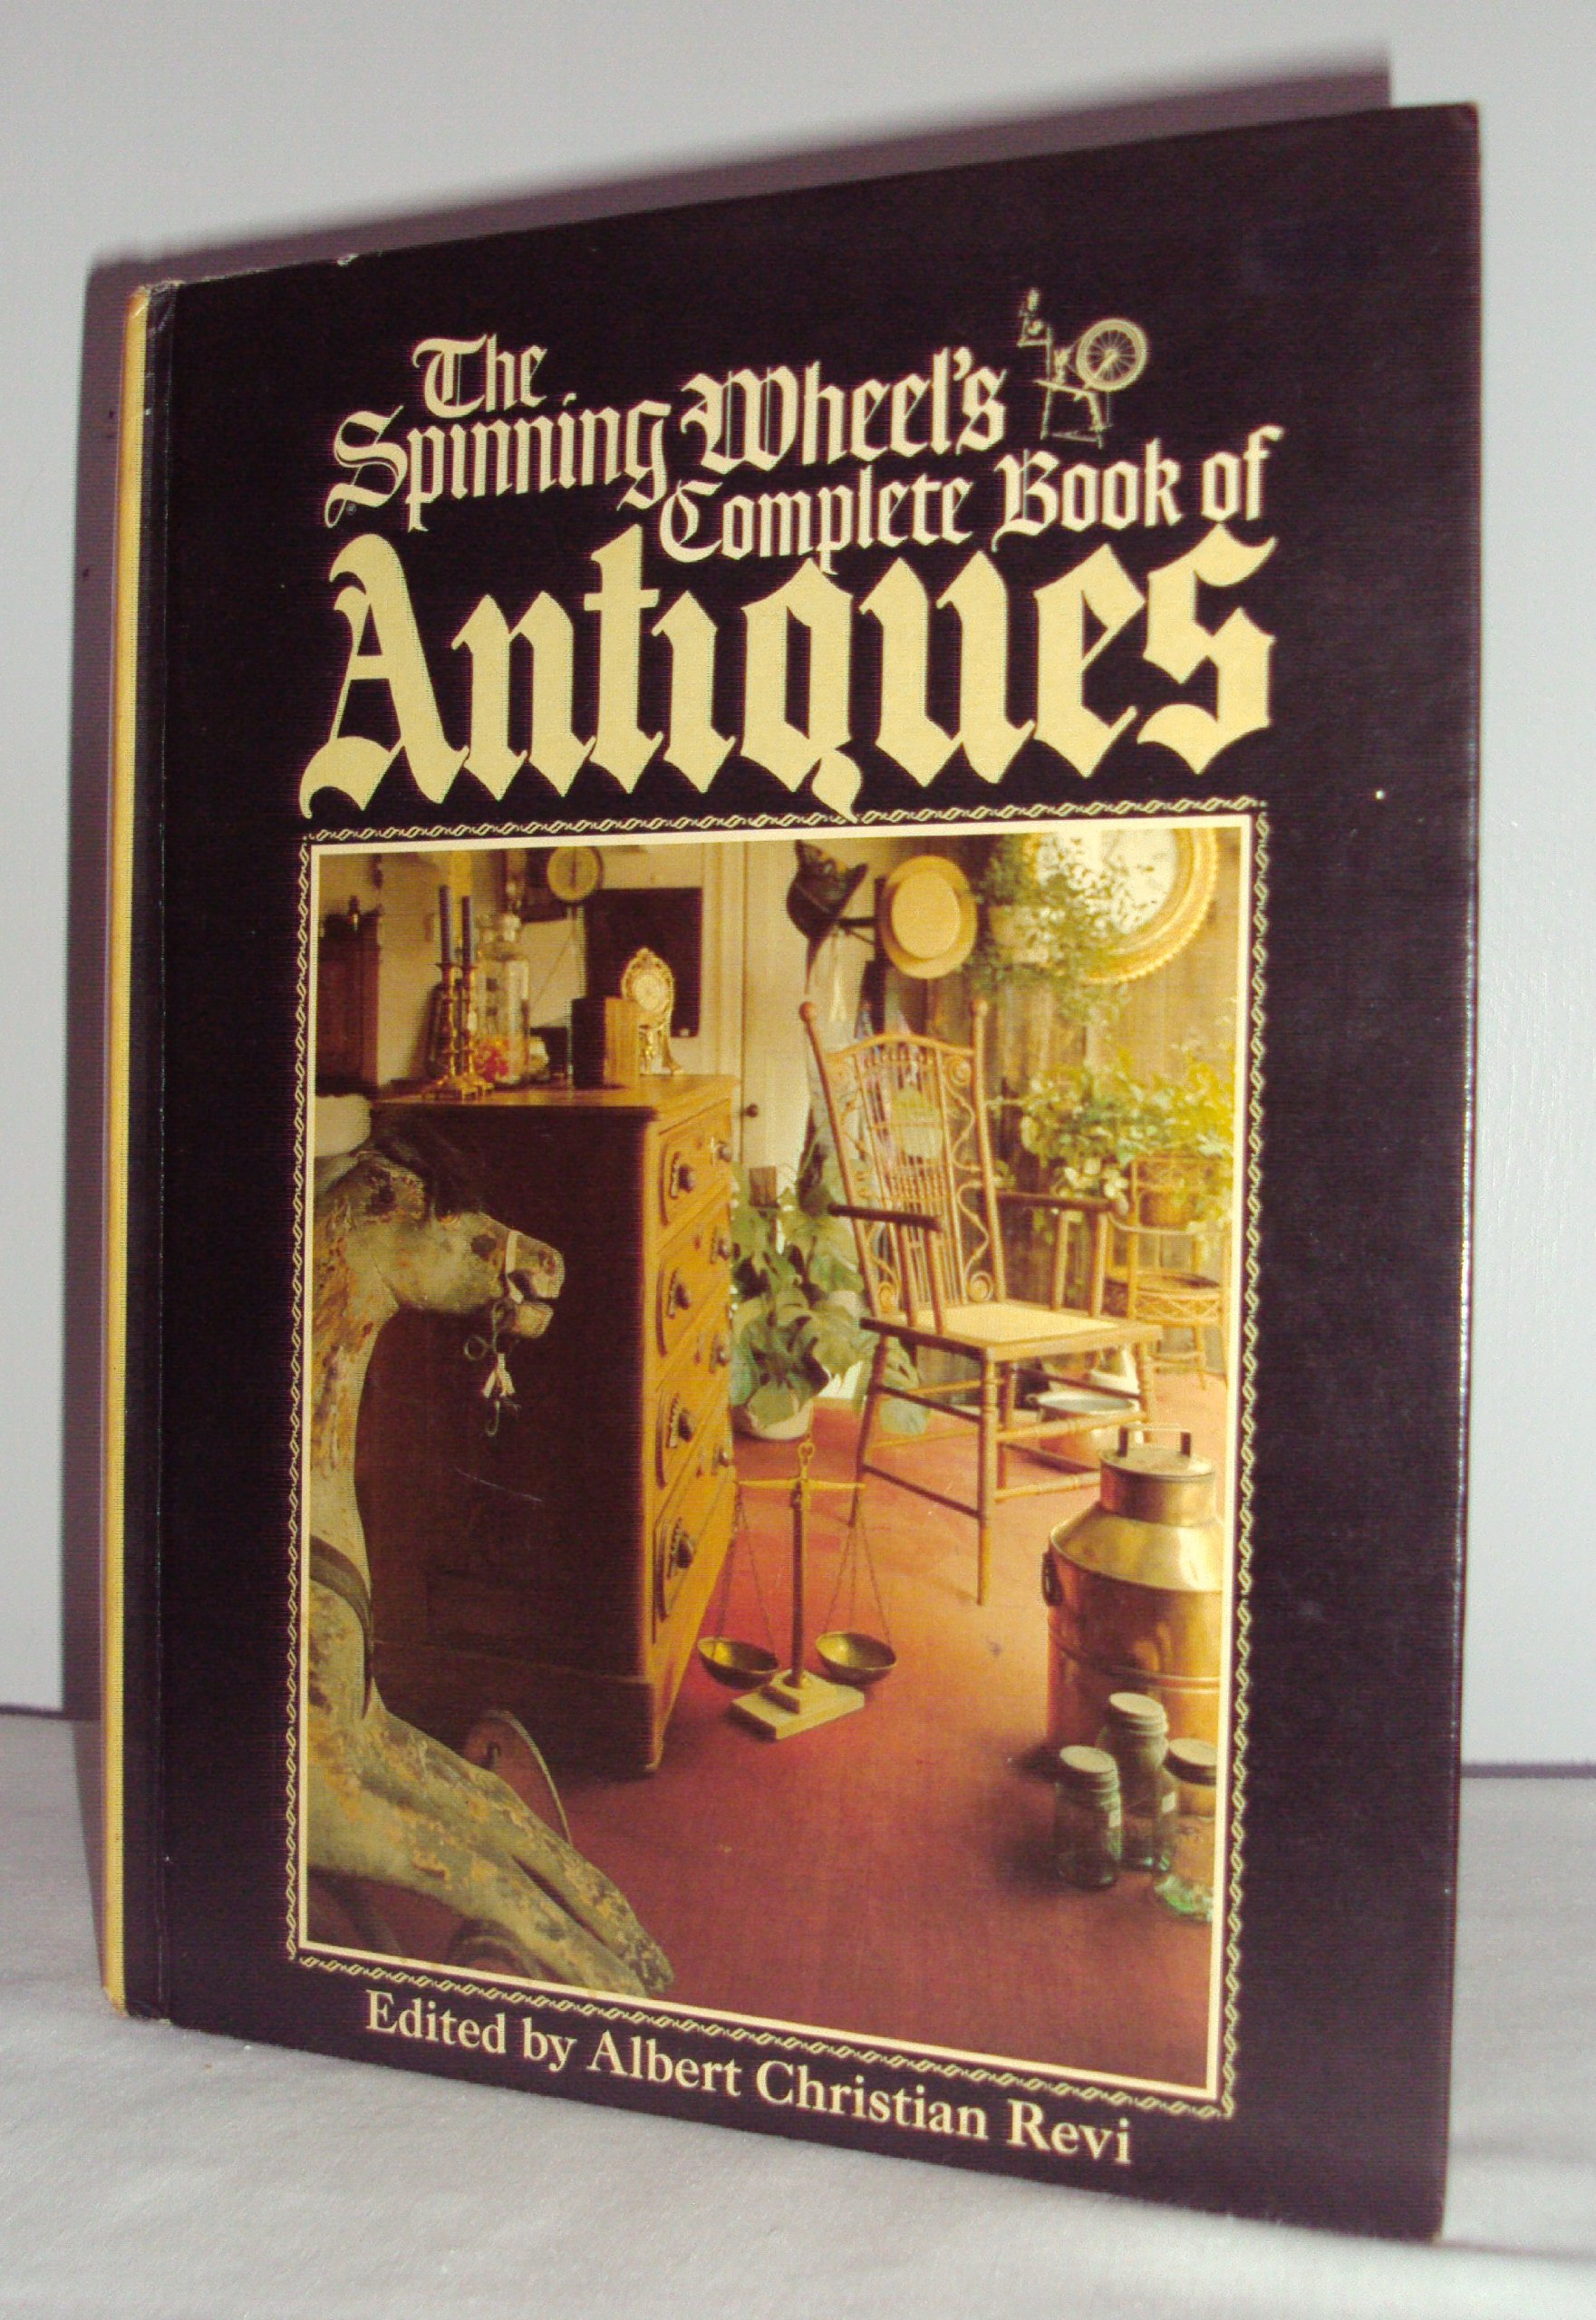 The Spinning Whell's Complete Book of Antiques